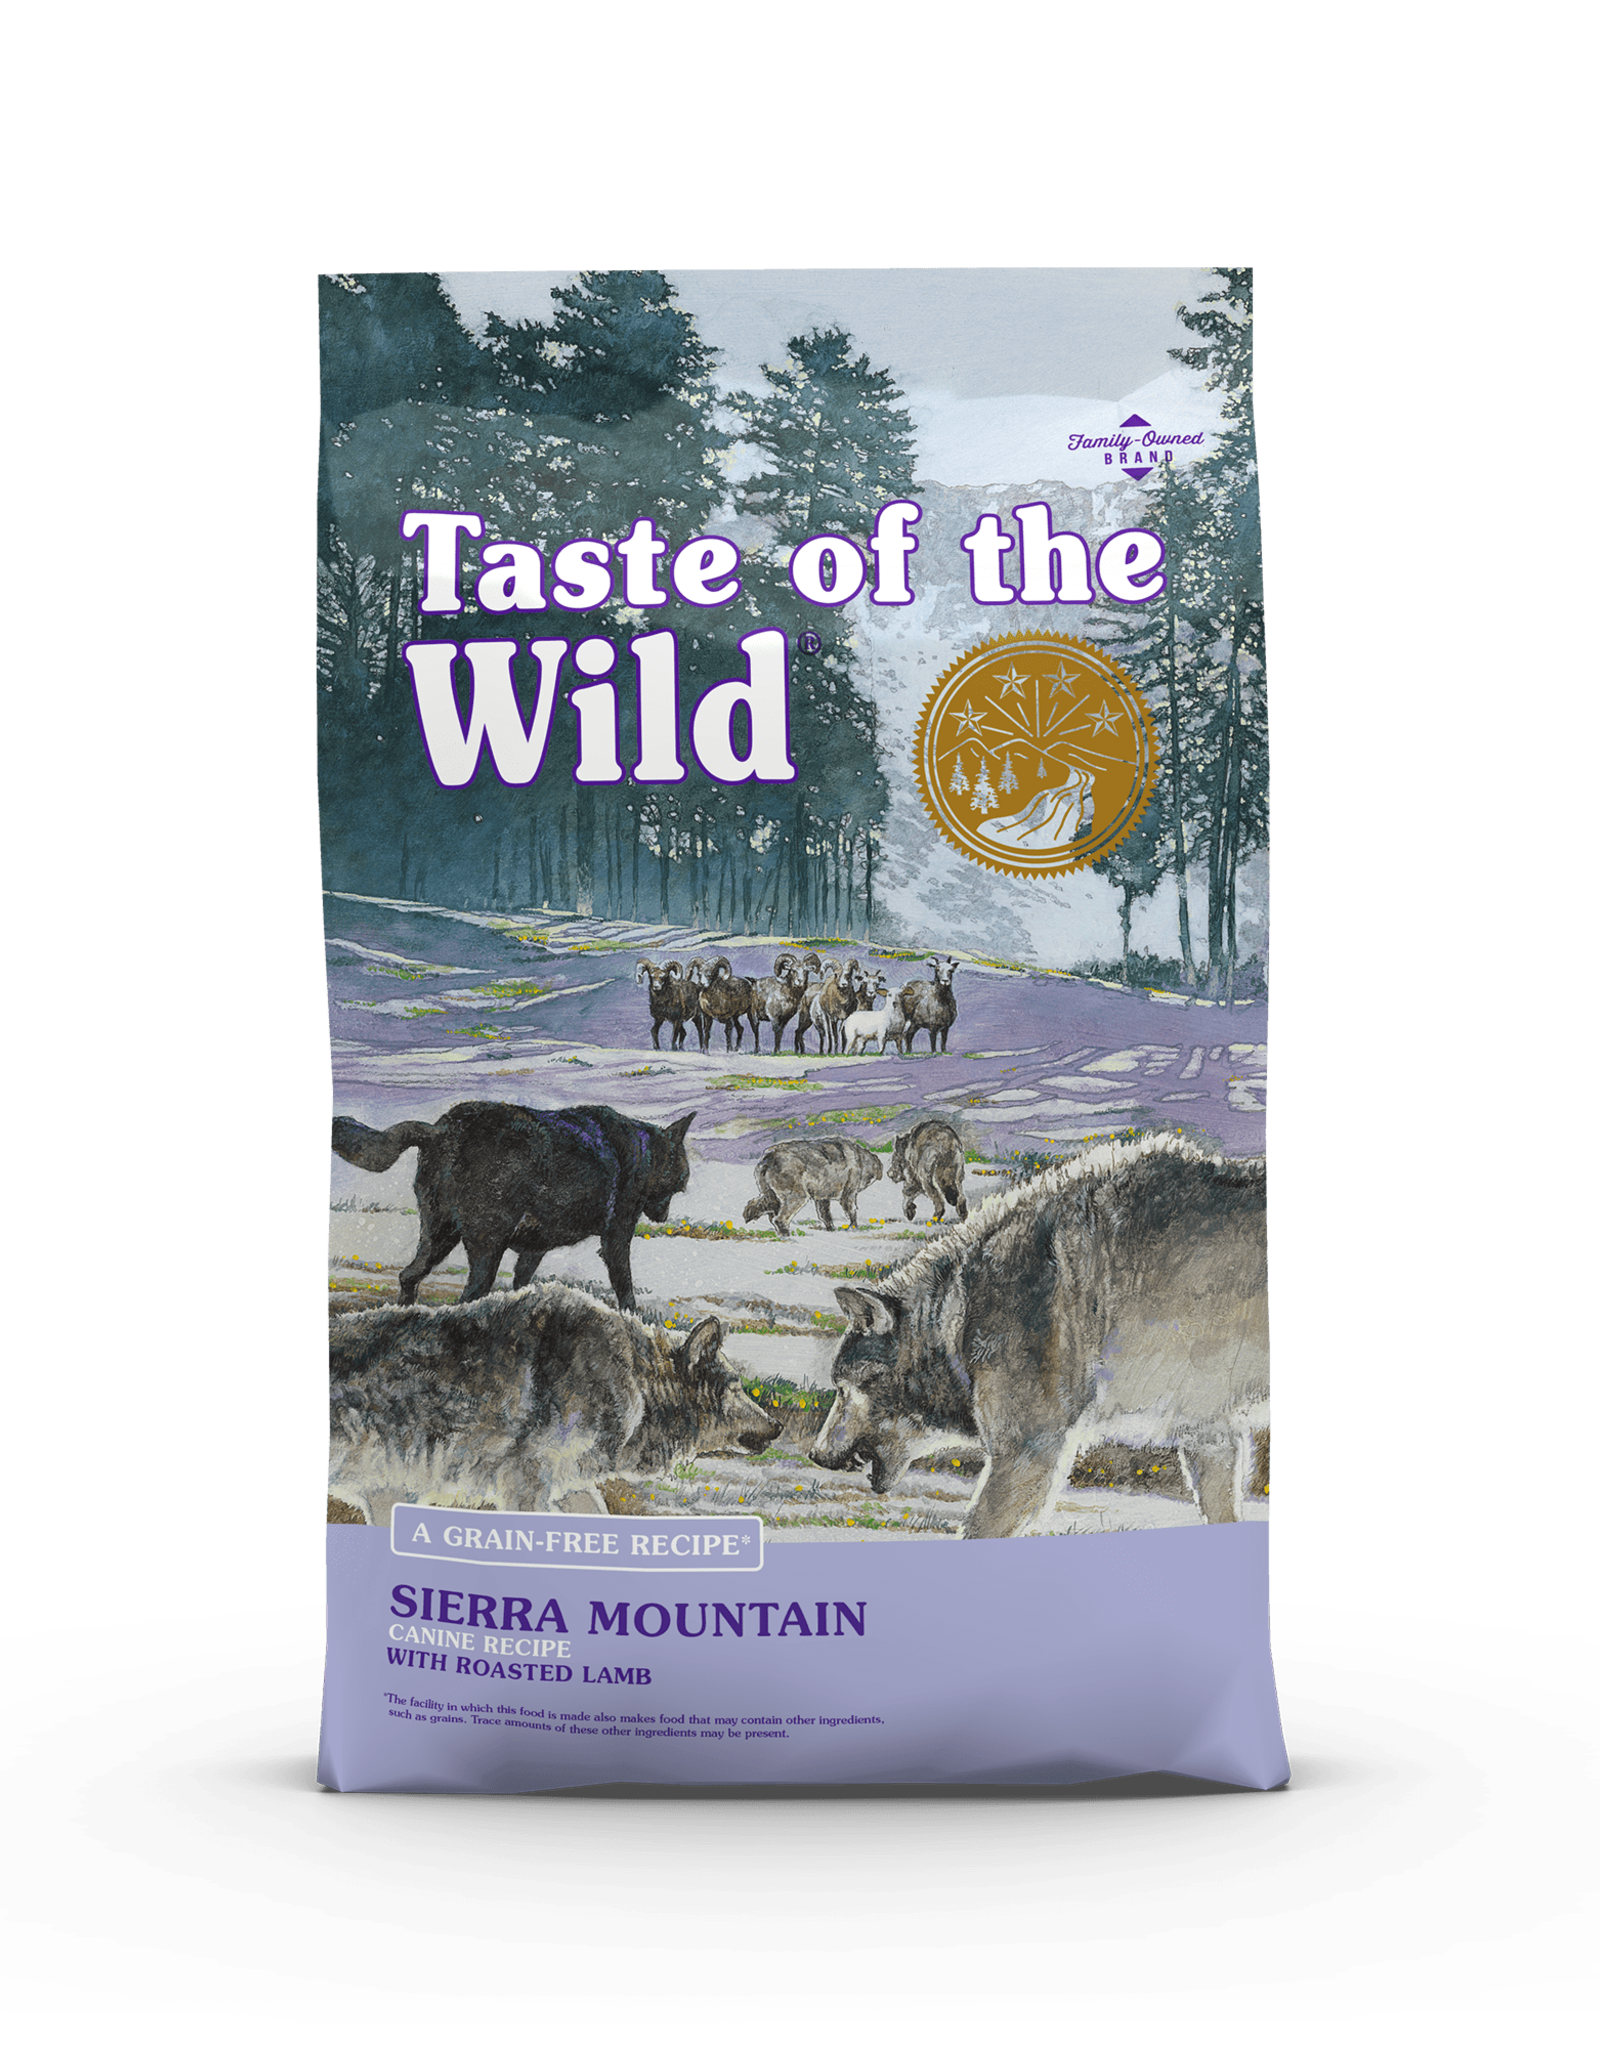 Taste of the Wild Pet Food Dog Sierra Mountain Recipe - Grain-Free 5lb